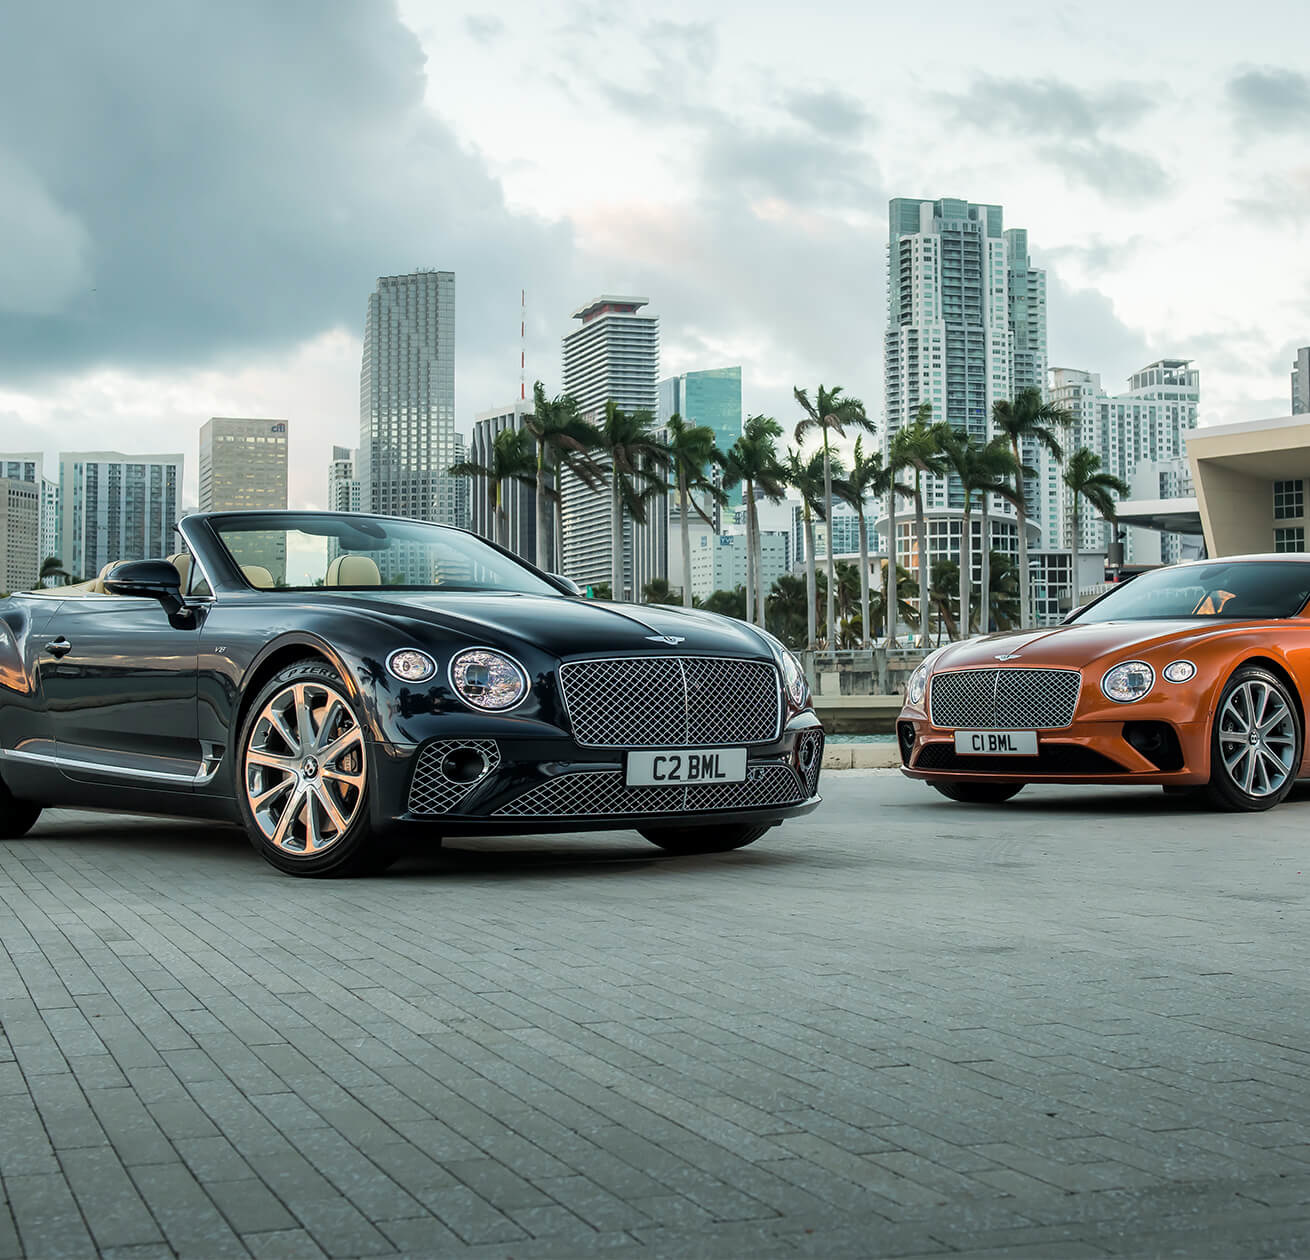 2 Bentleys infront of a city scape